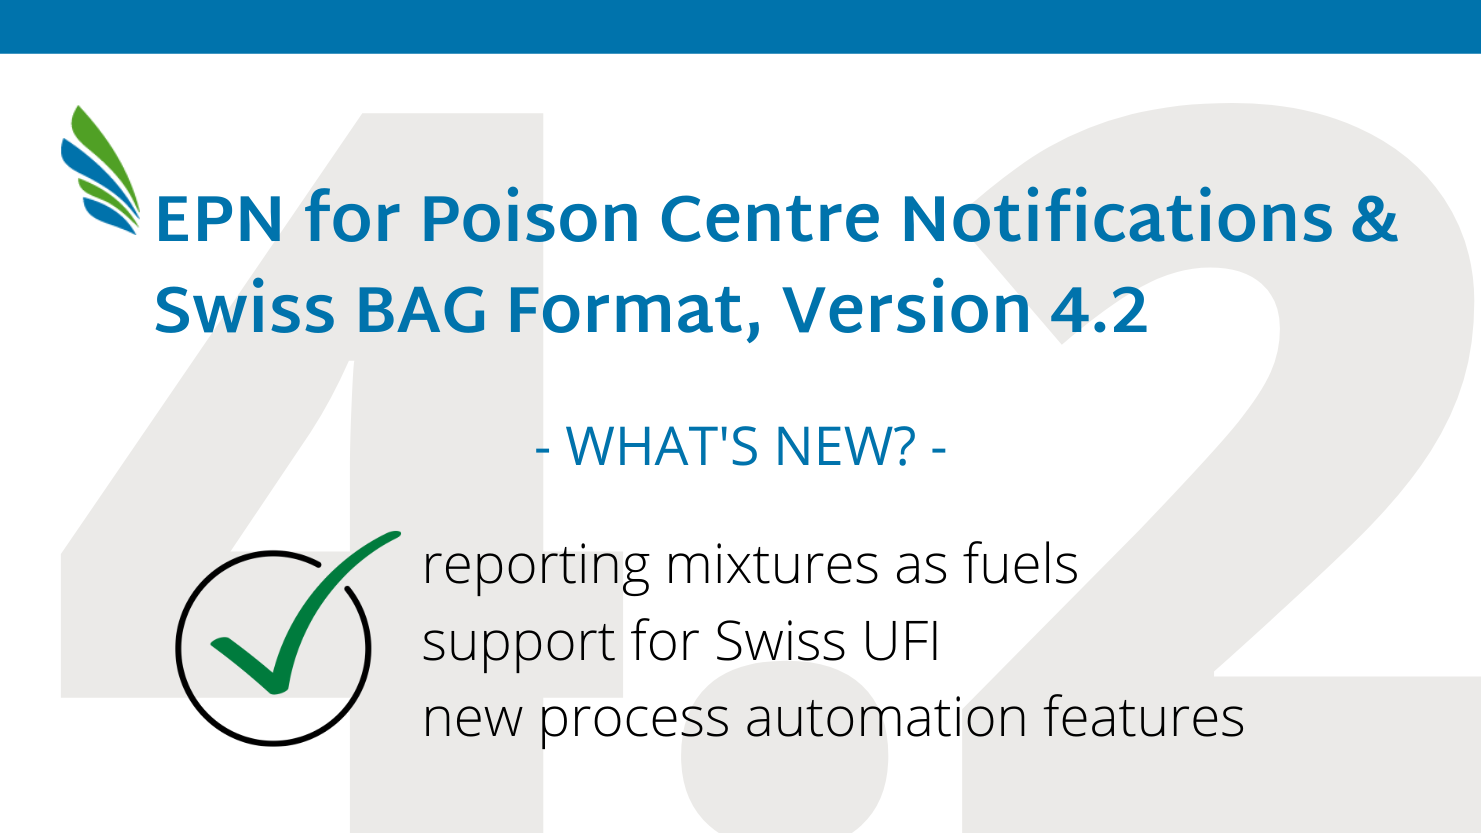 Release of opesus EPN for the process industry PCN and Swiss UFI